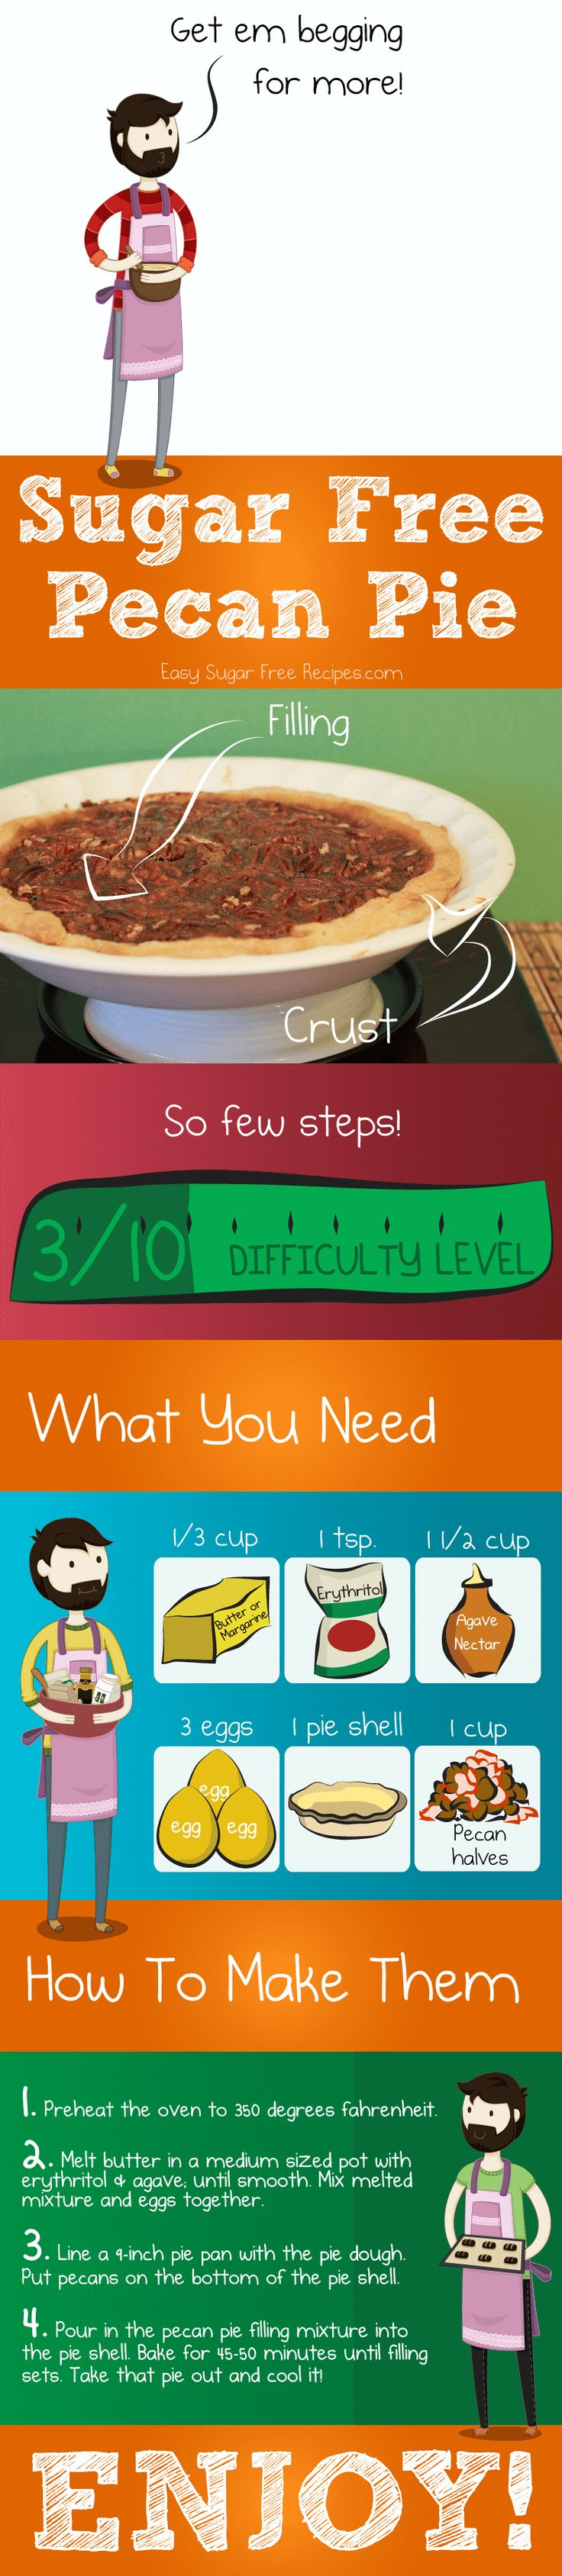 the comic for my sugar free pecan pie with ingredients and directions